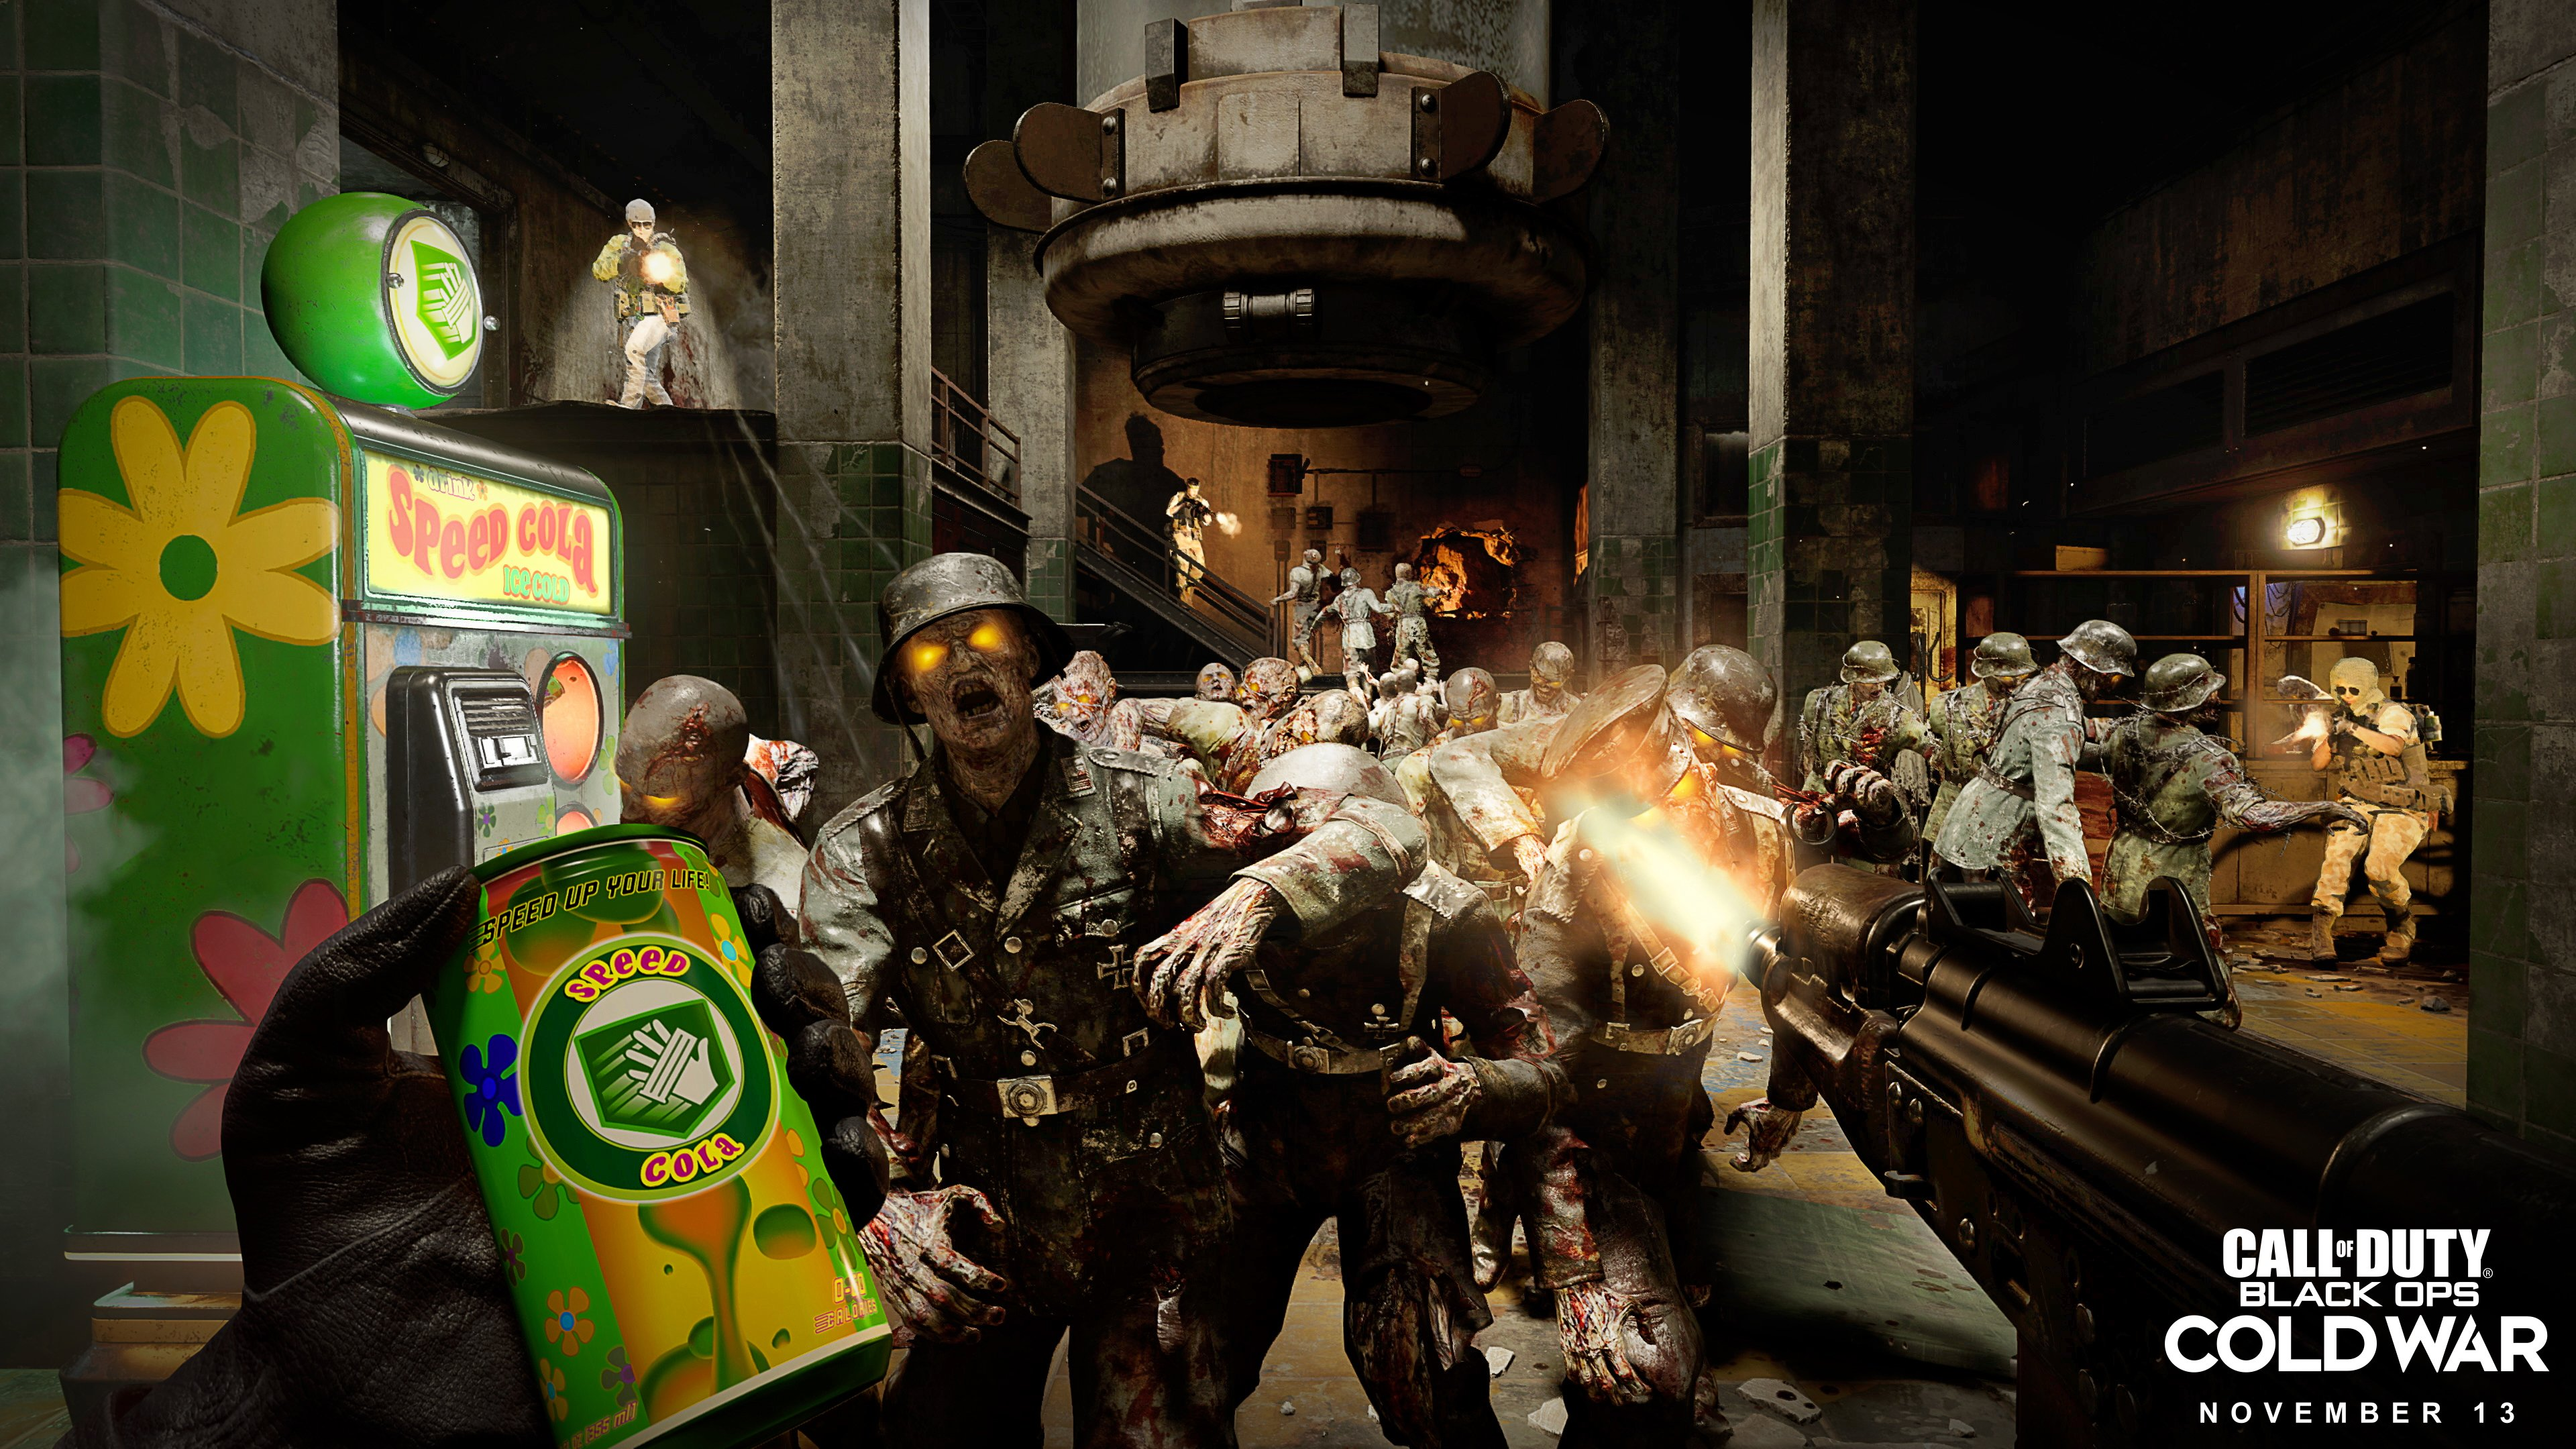 Call of Duty: Black Ops Cold War: Update Season 1 Reloaded is coming - this is the new Zombies map